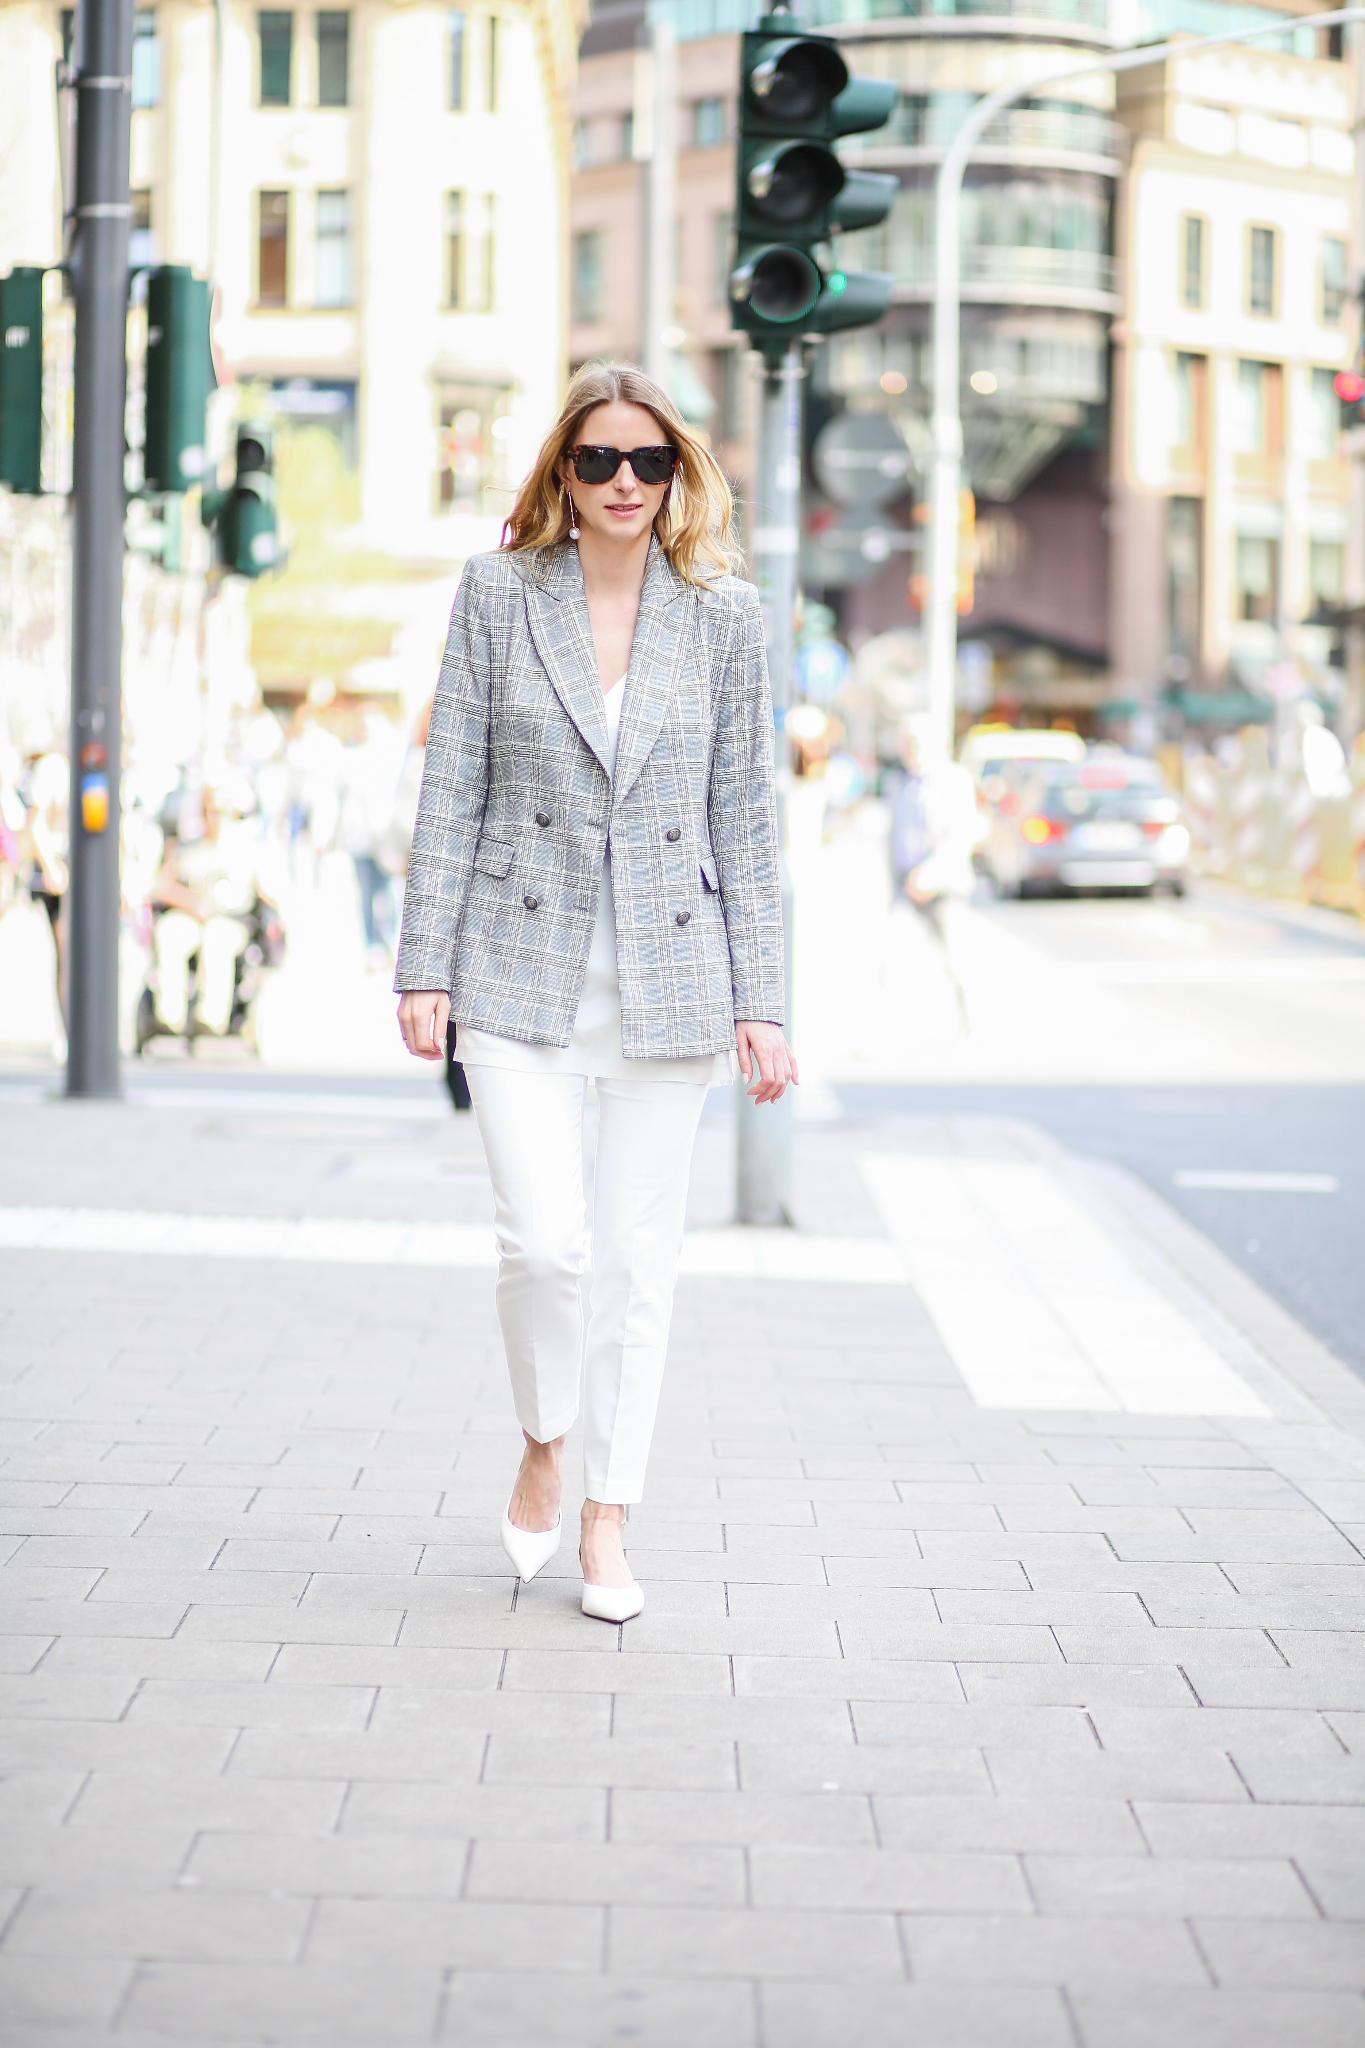 MOD-by-Monique-Fashion-Looks-White-and-checked-2